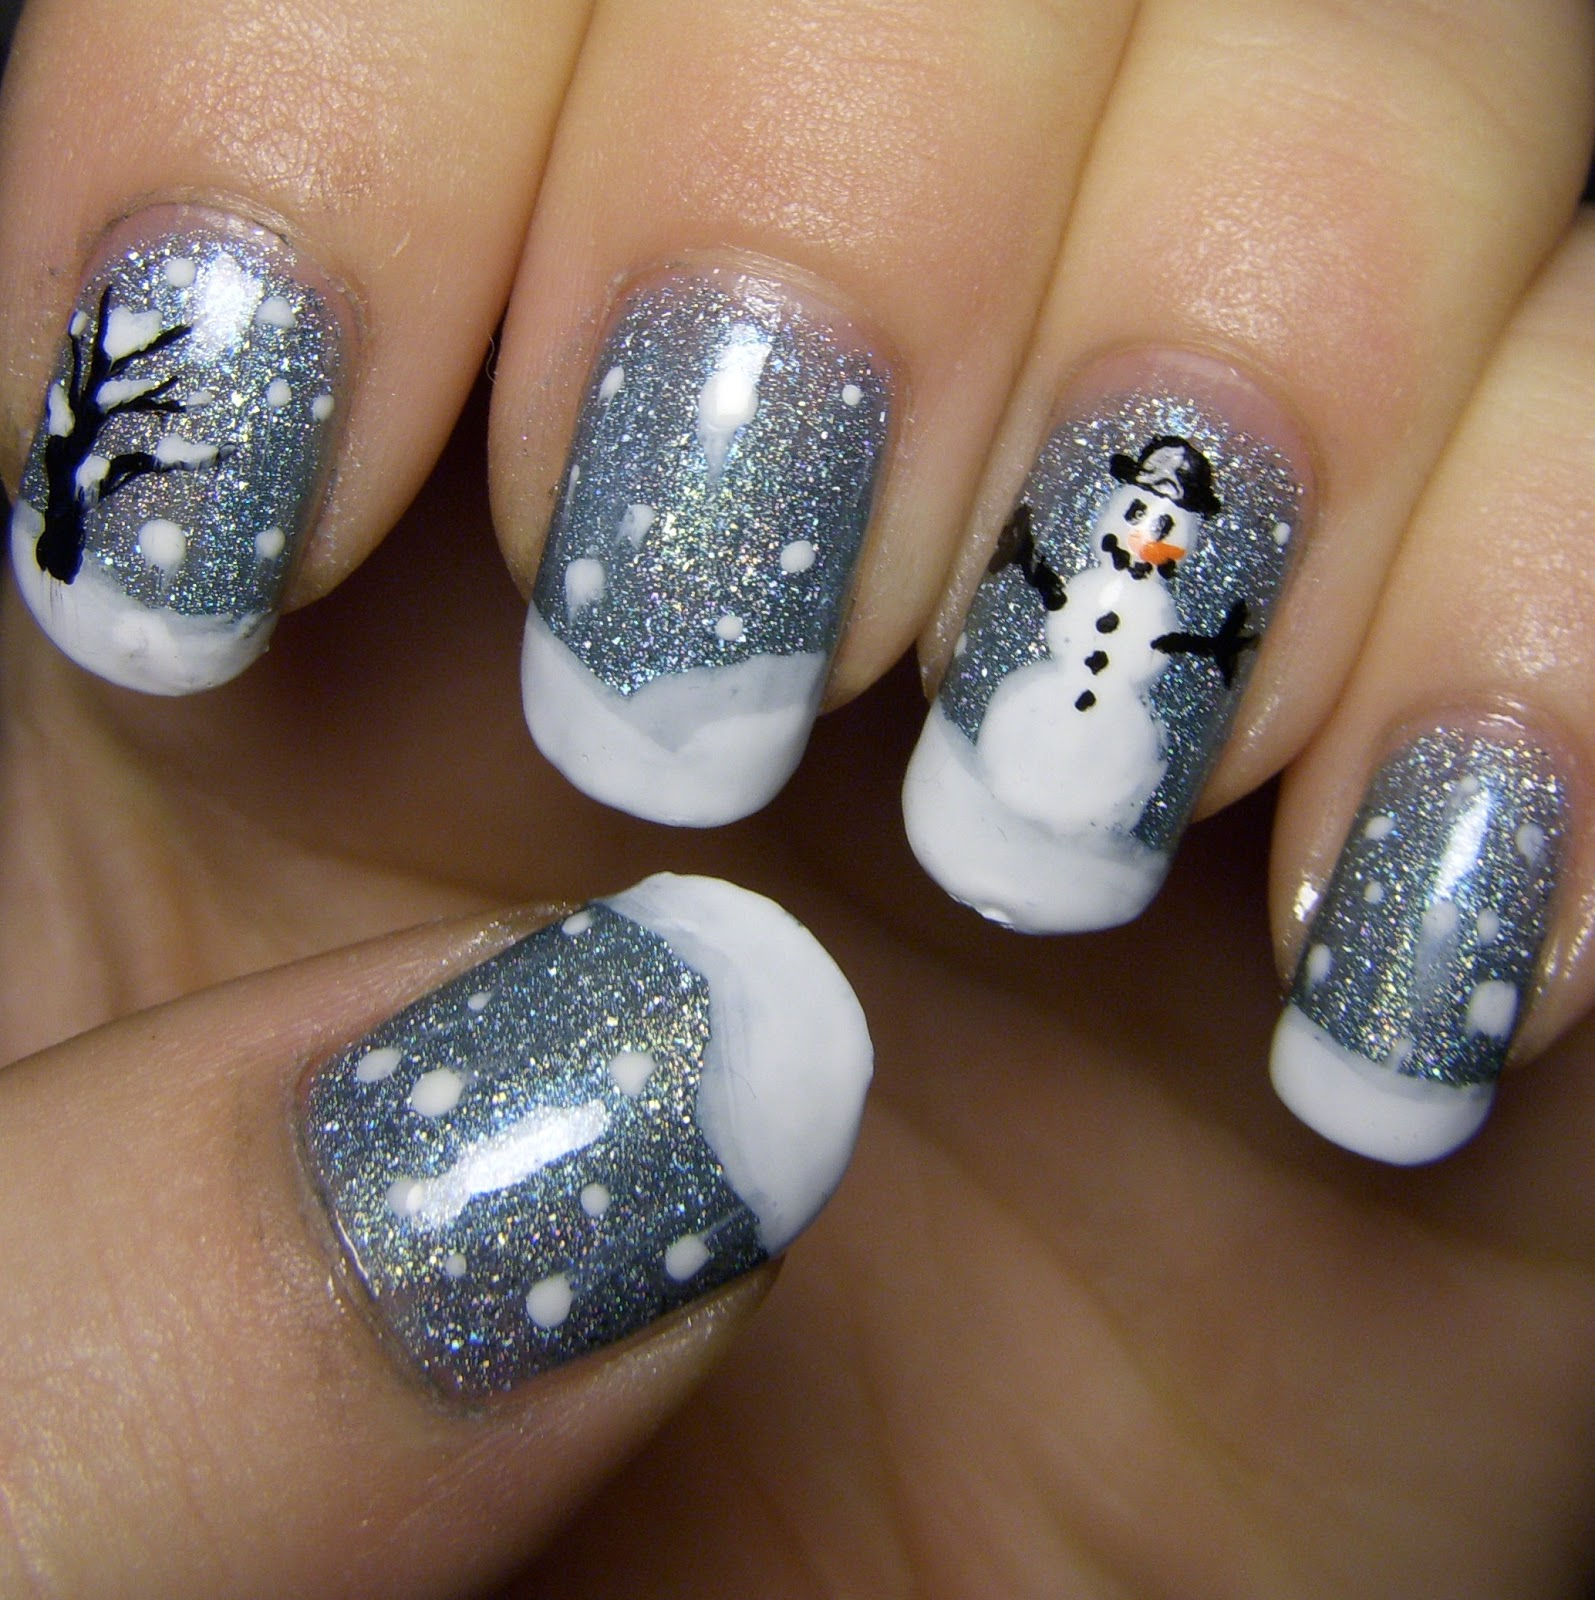 Nail Art: Quixii's Nails: 12/15/12